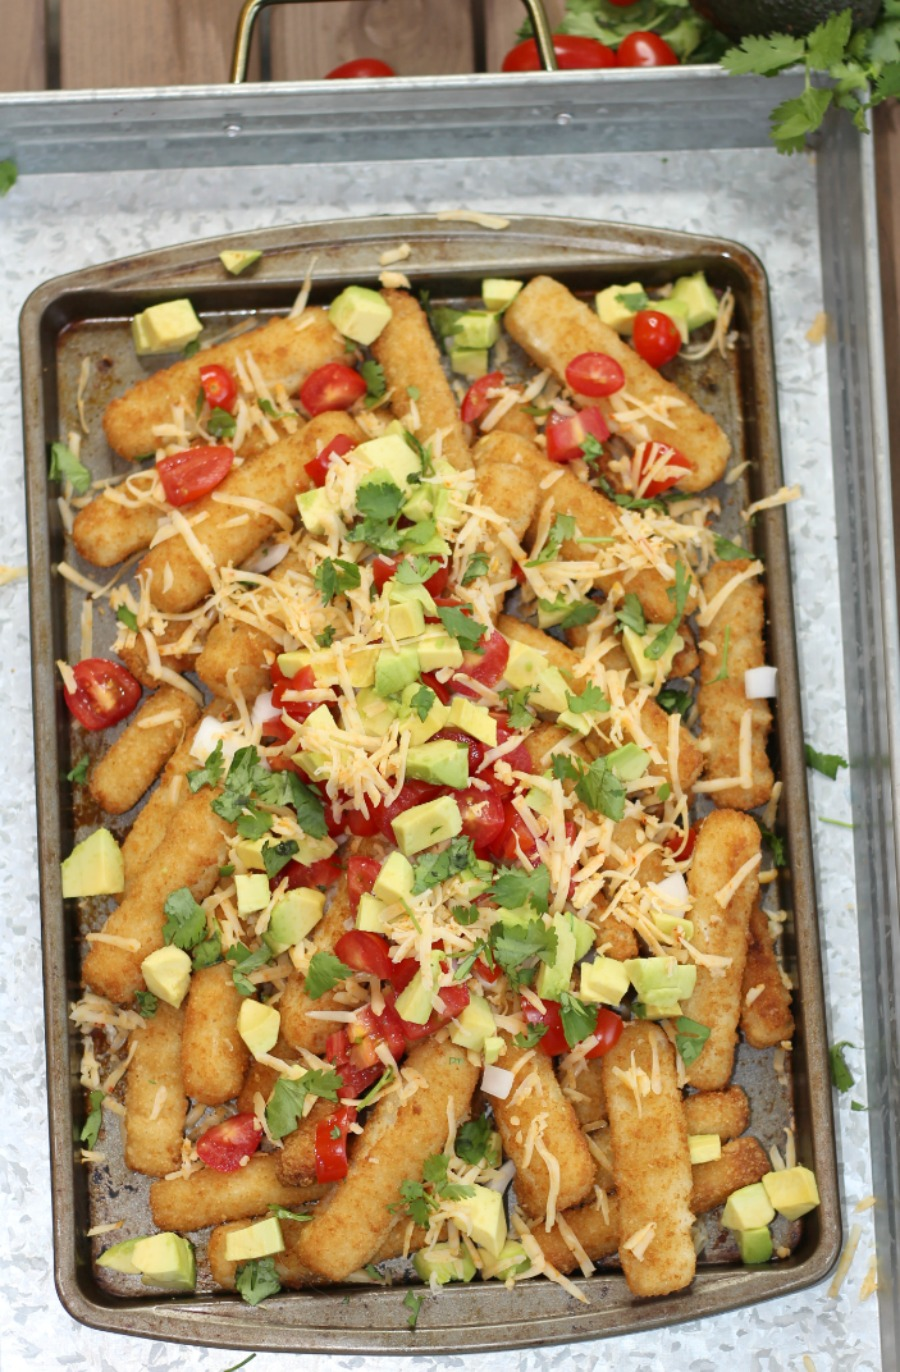 This is not your ordinary nachos recipe! These Fish Stick Nachos are a delicious twist on dinner!